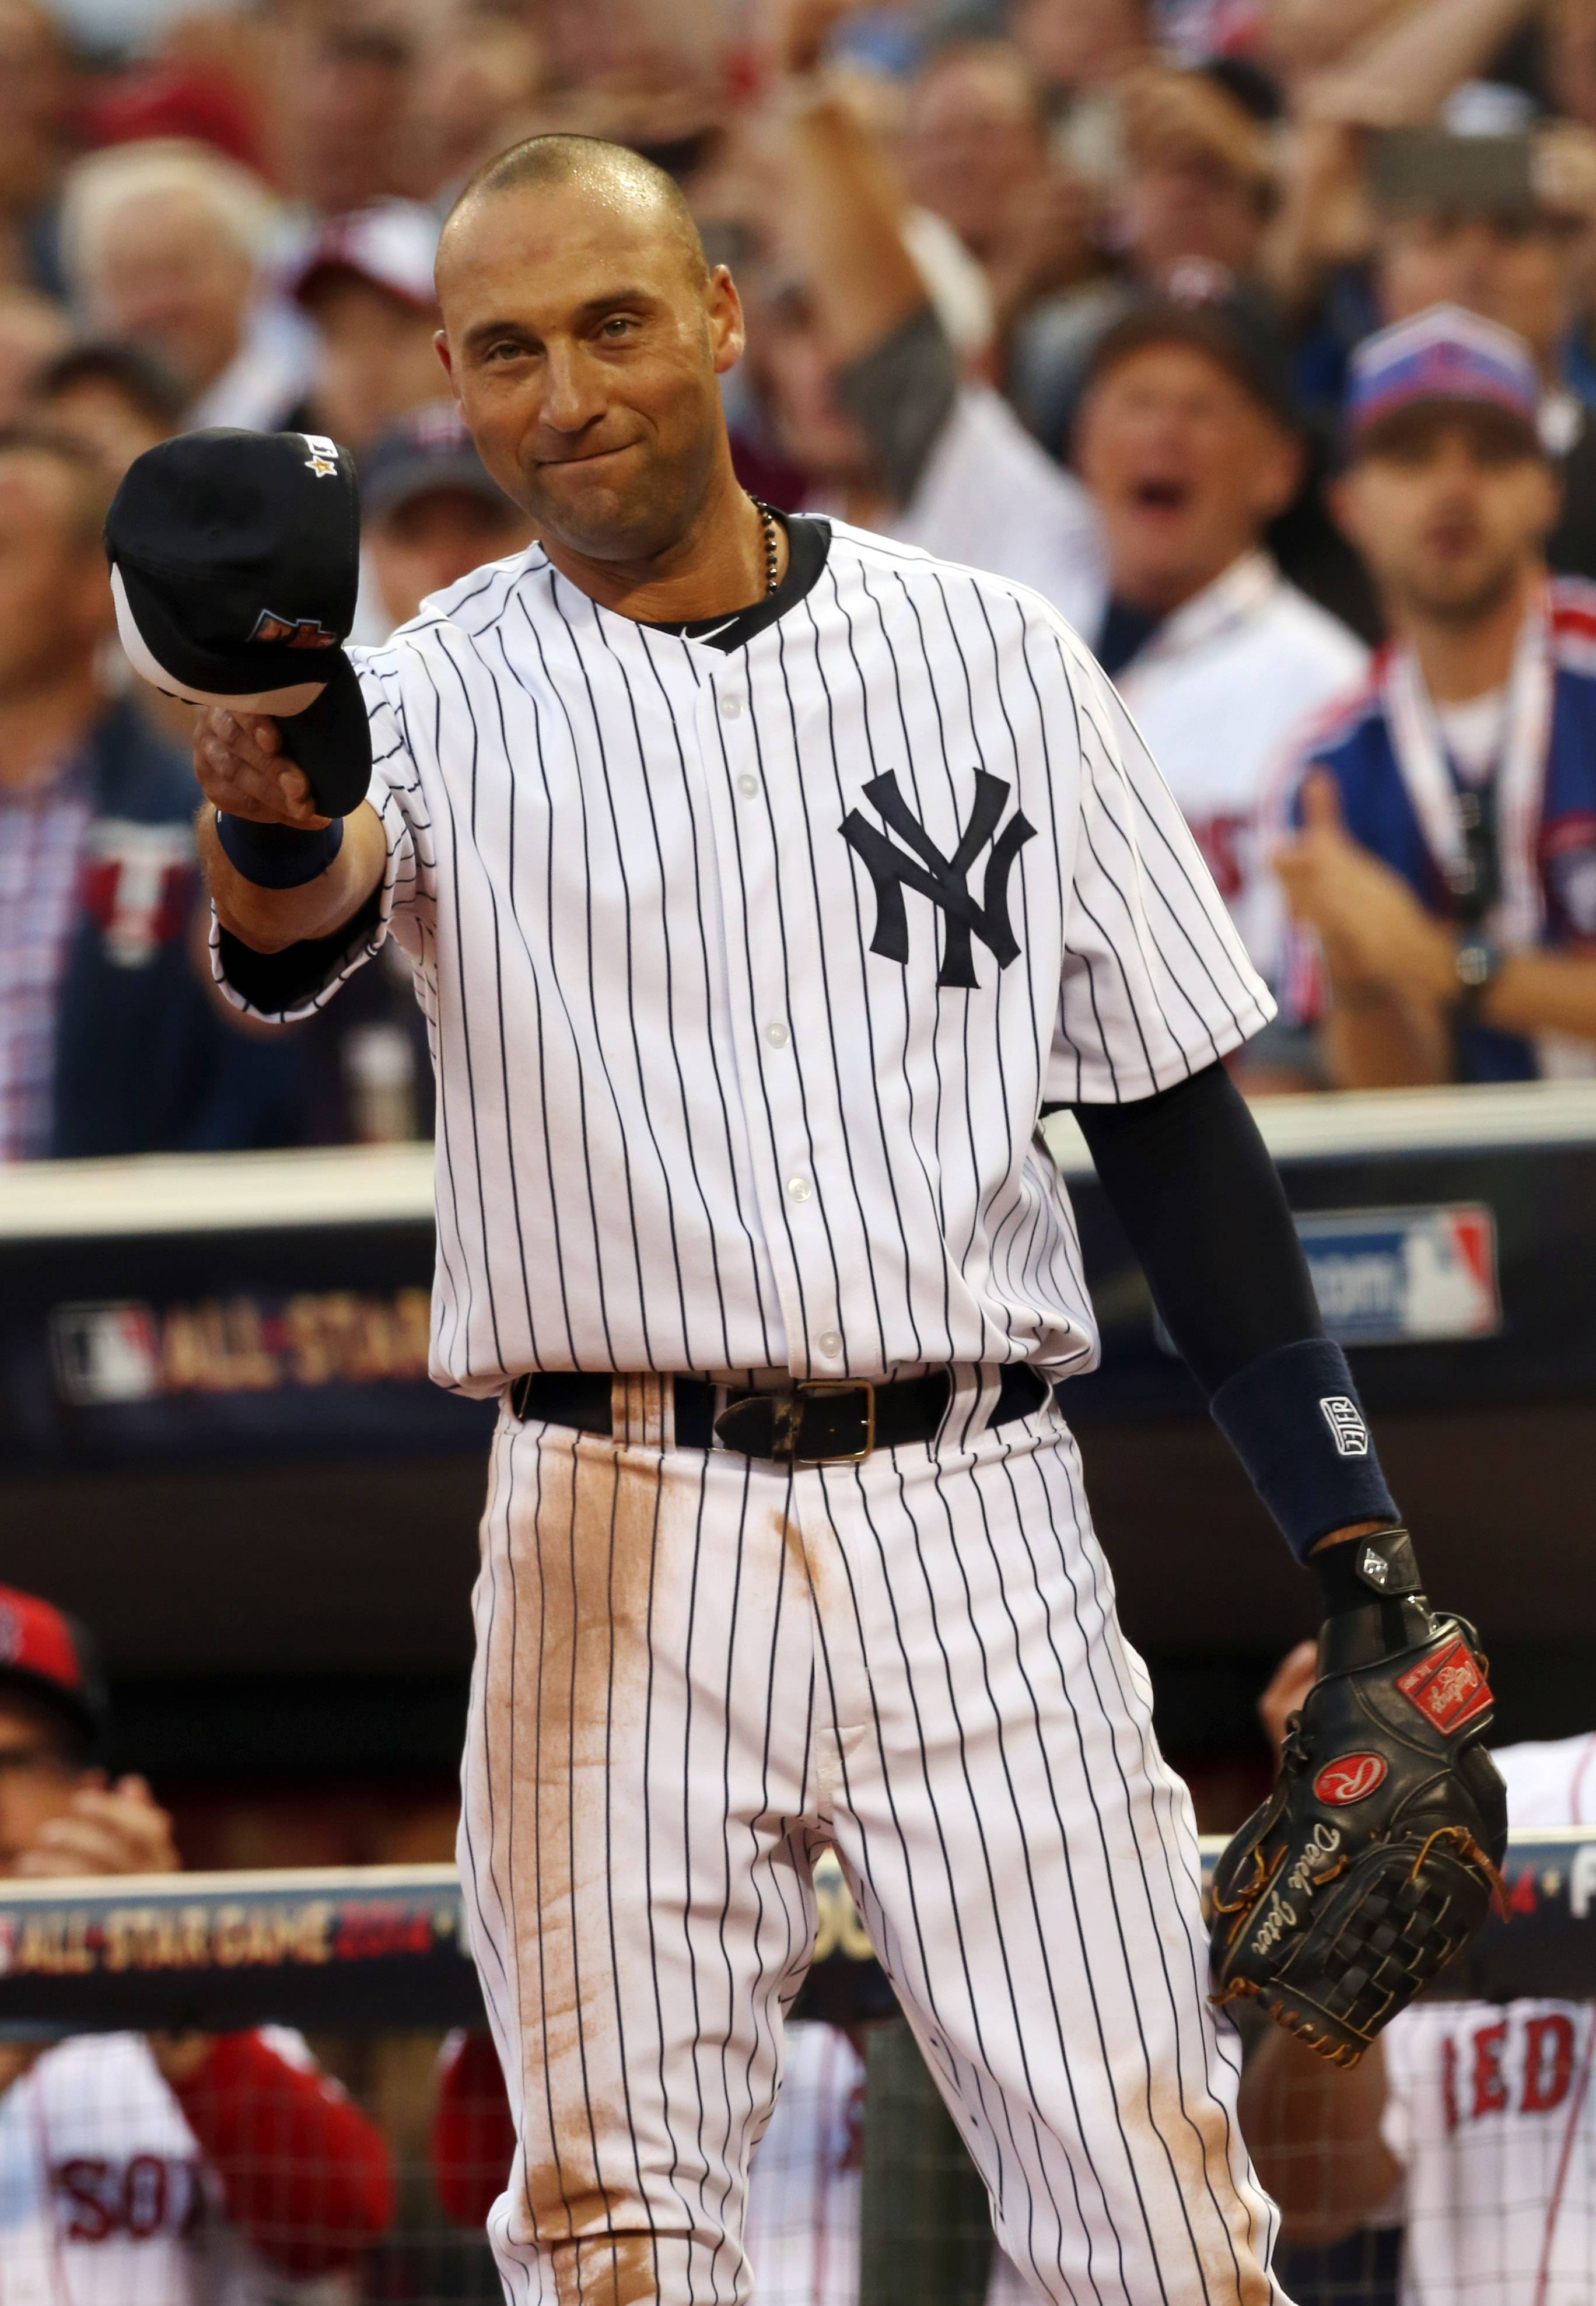 Playing in his final All-Star Game, Yankees shortstop Derek Jeter waves as he is taken out in the fourth inning Tuesday night at Target Field in Minneapolis.